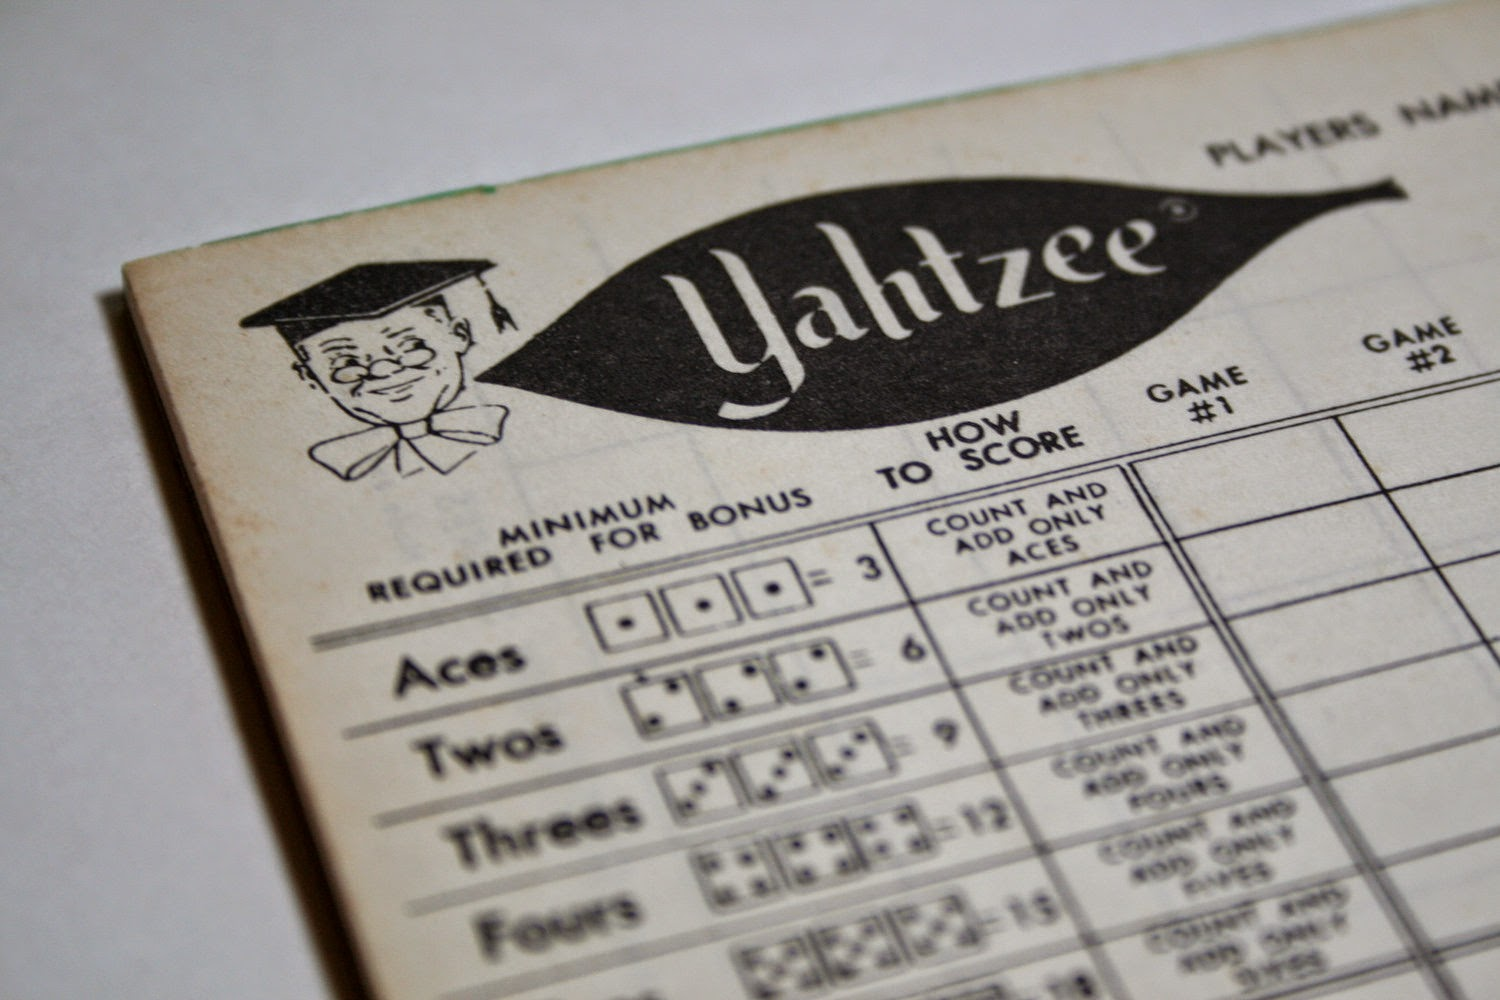 image about Yahtzee Score Card Printable referred to as Yahtzee On line: Printable Yahtzee Ranking Sheet